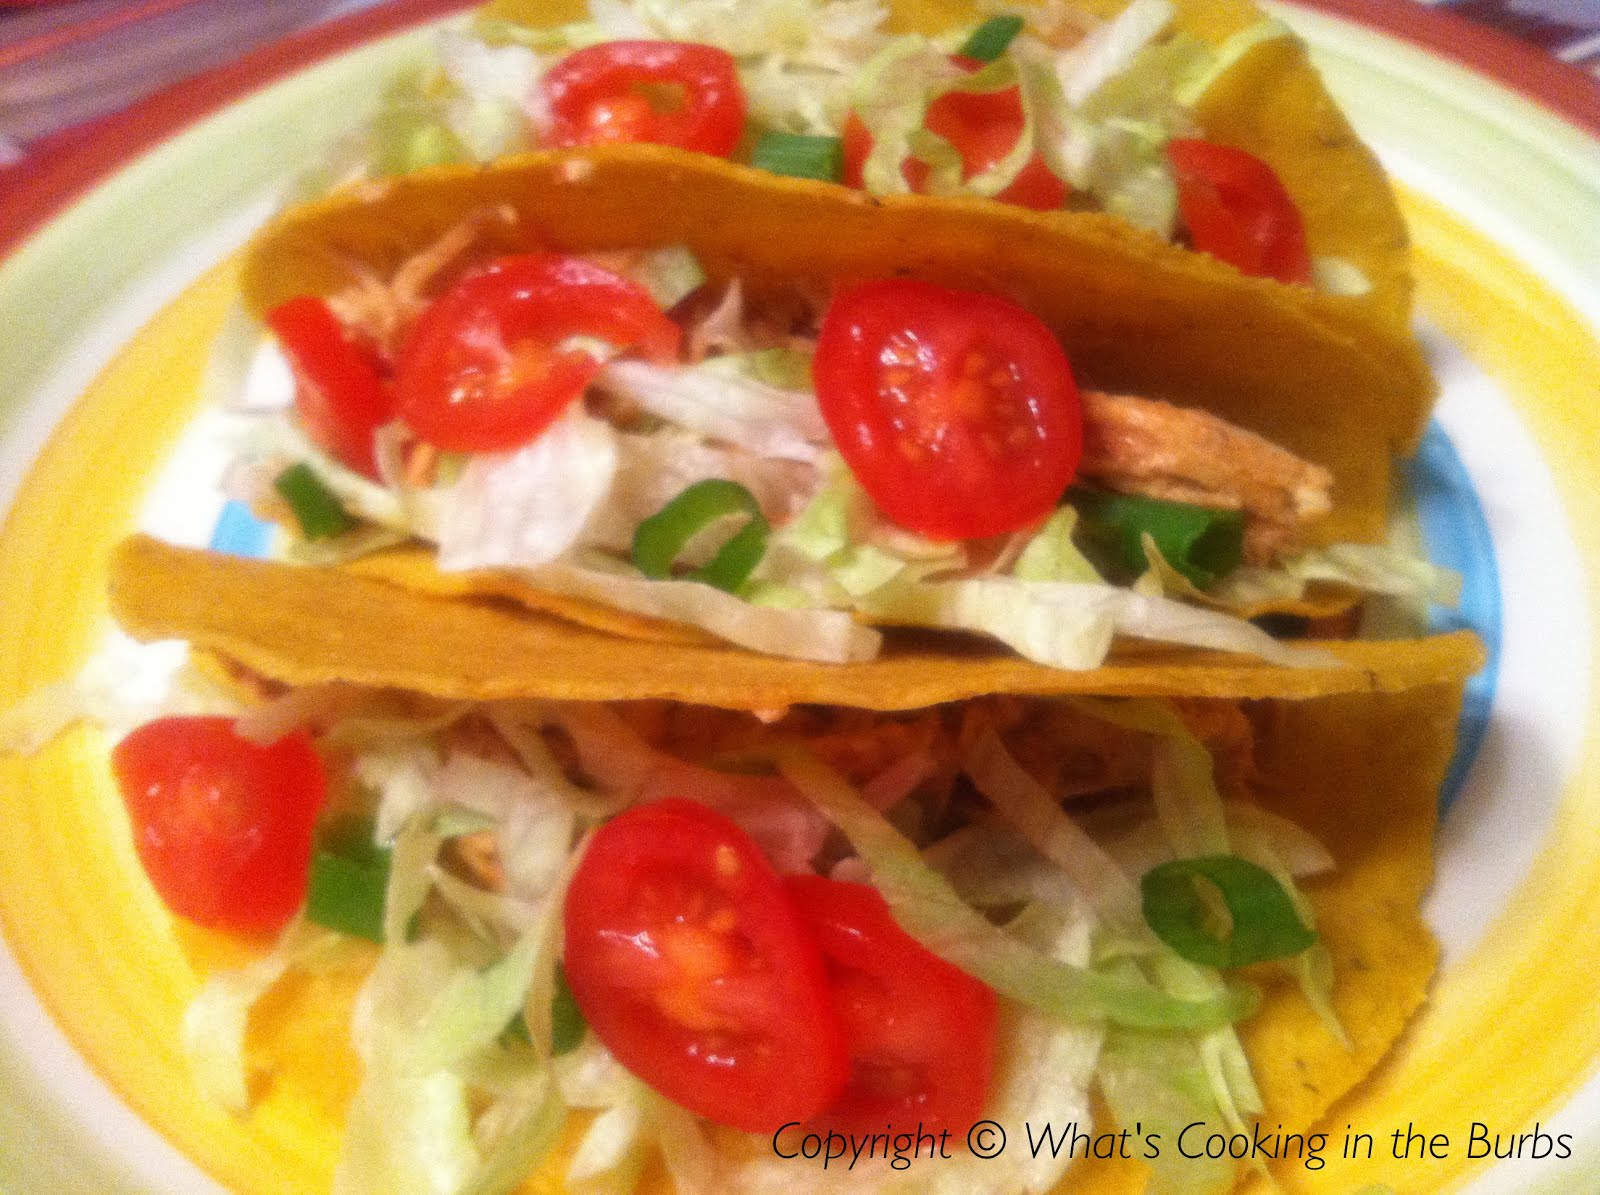 ... Cooking in the Burbs: Slow Cooker Spicy Cream Cheese Chicken Tacos